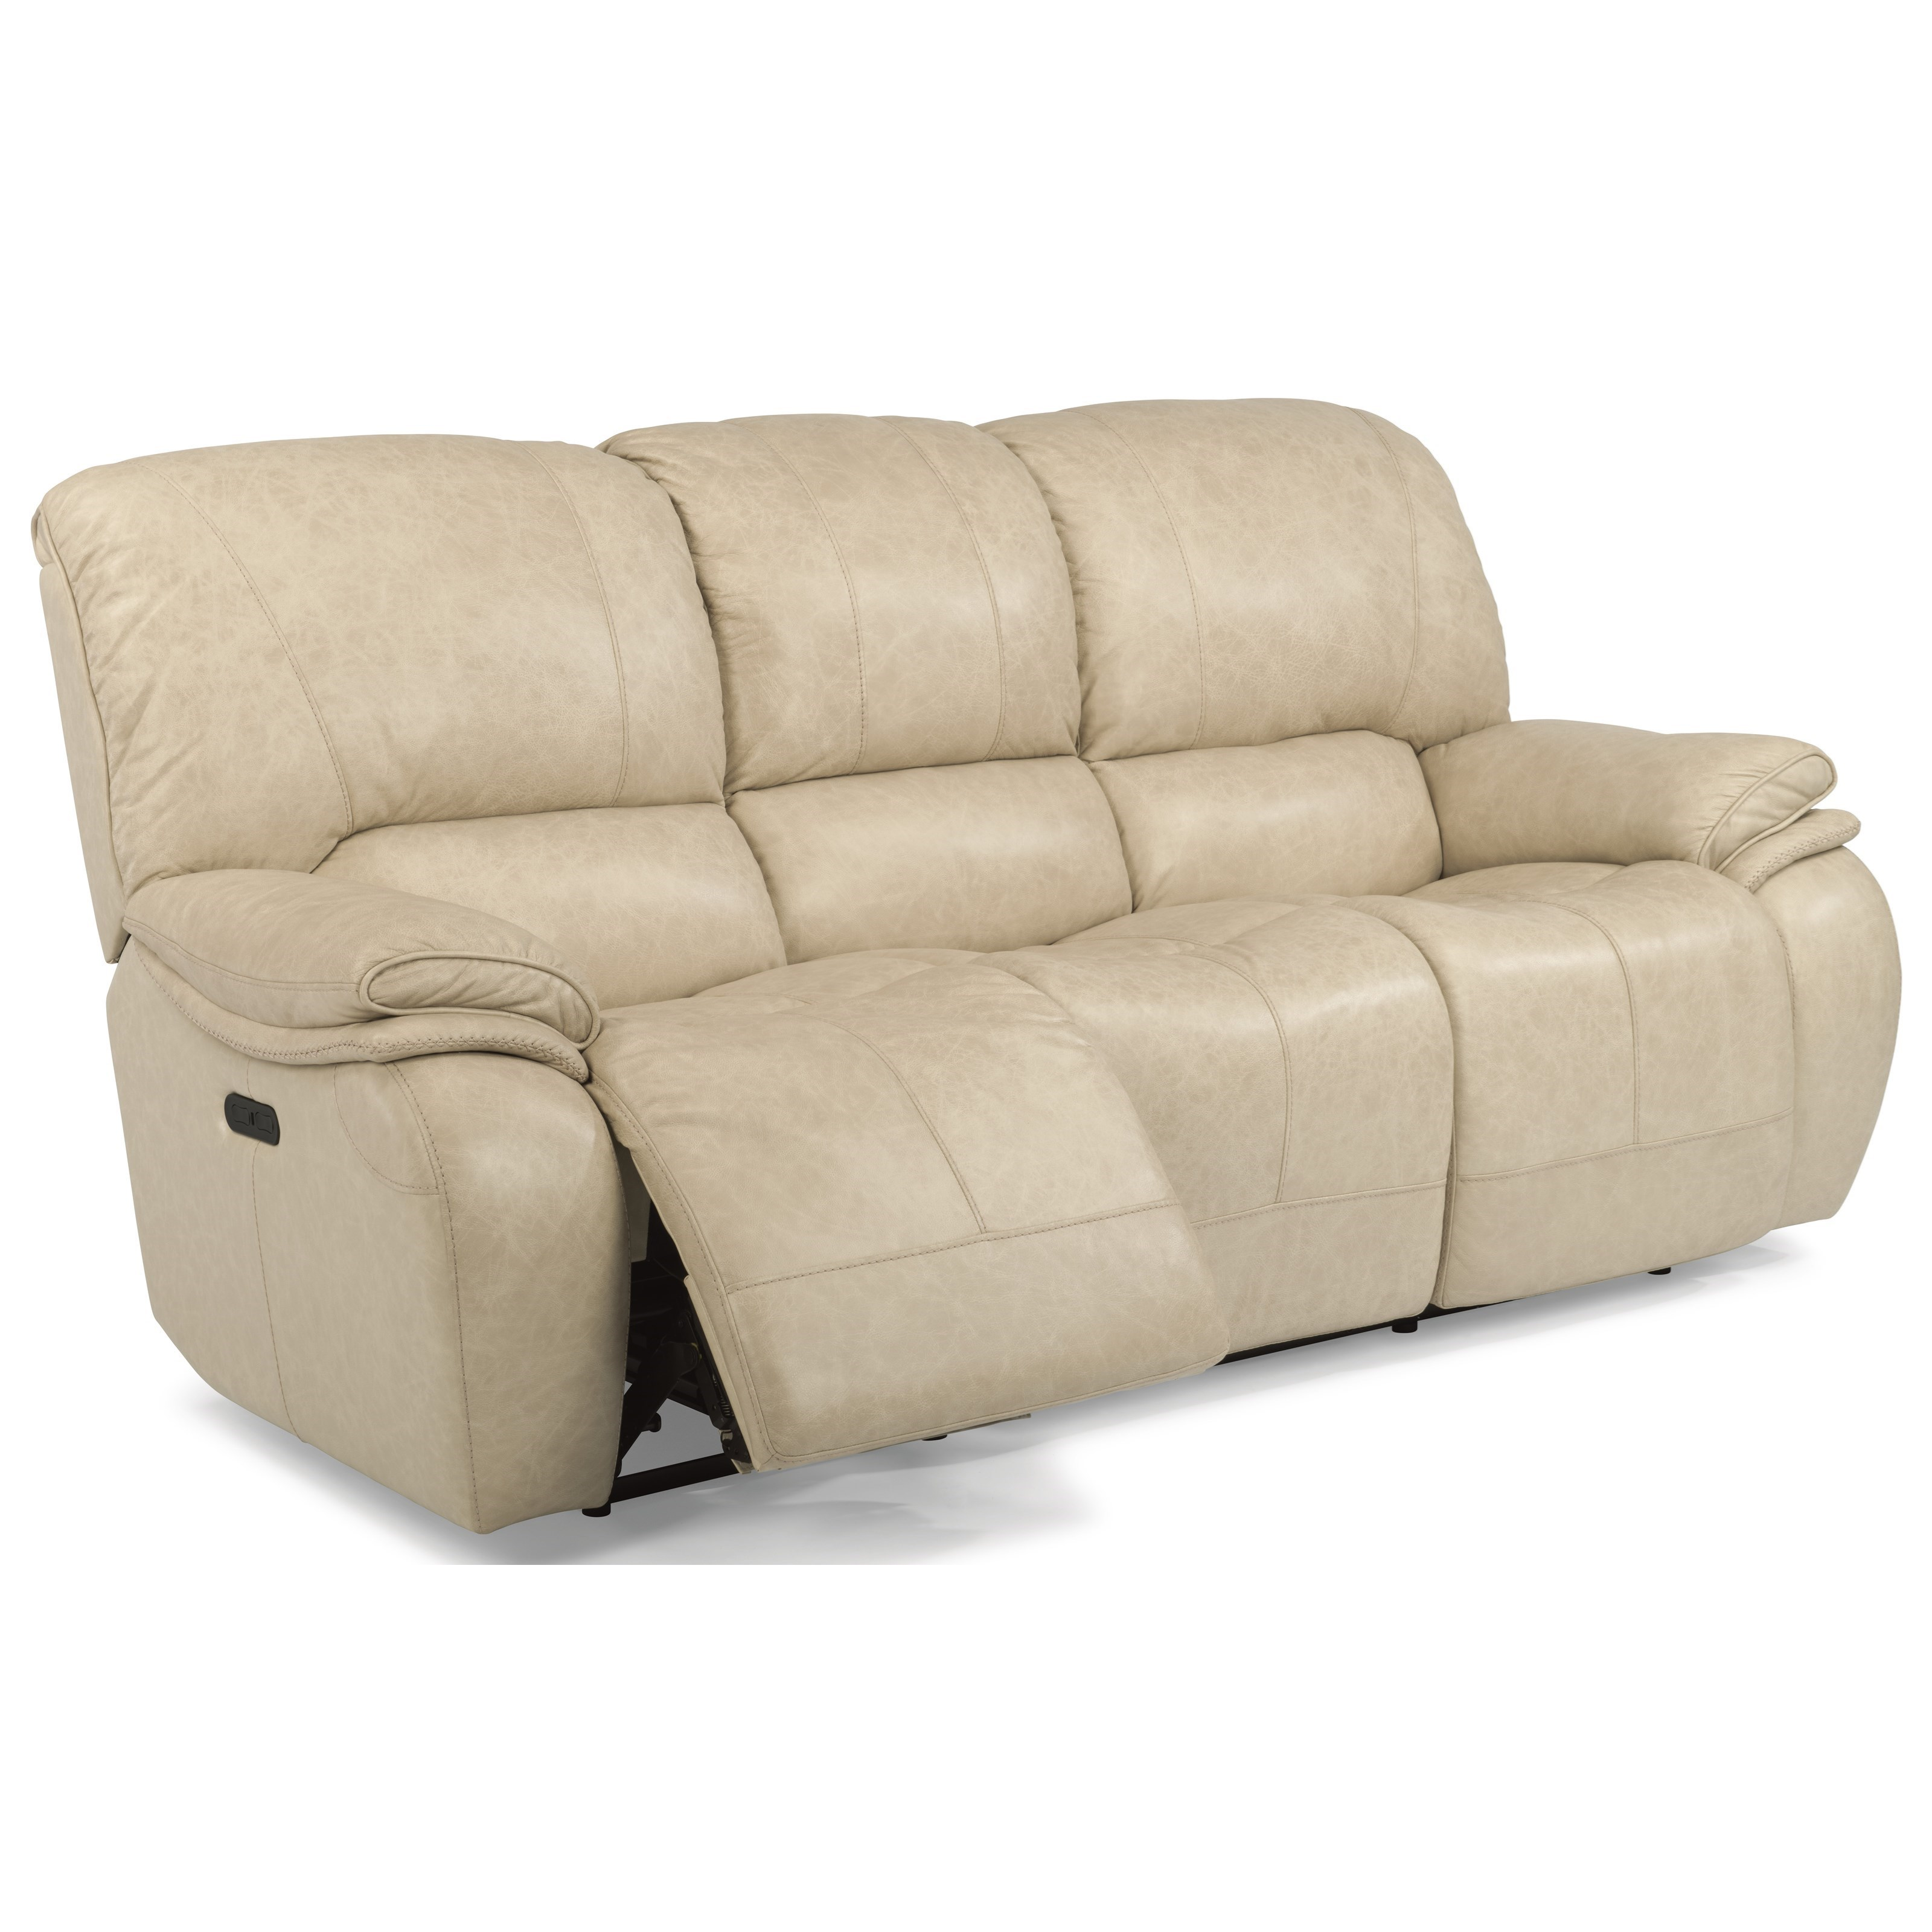 Flexsteel Latitudes Tobin Power Reclining Sofa with Power Headrest